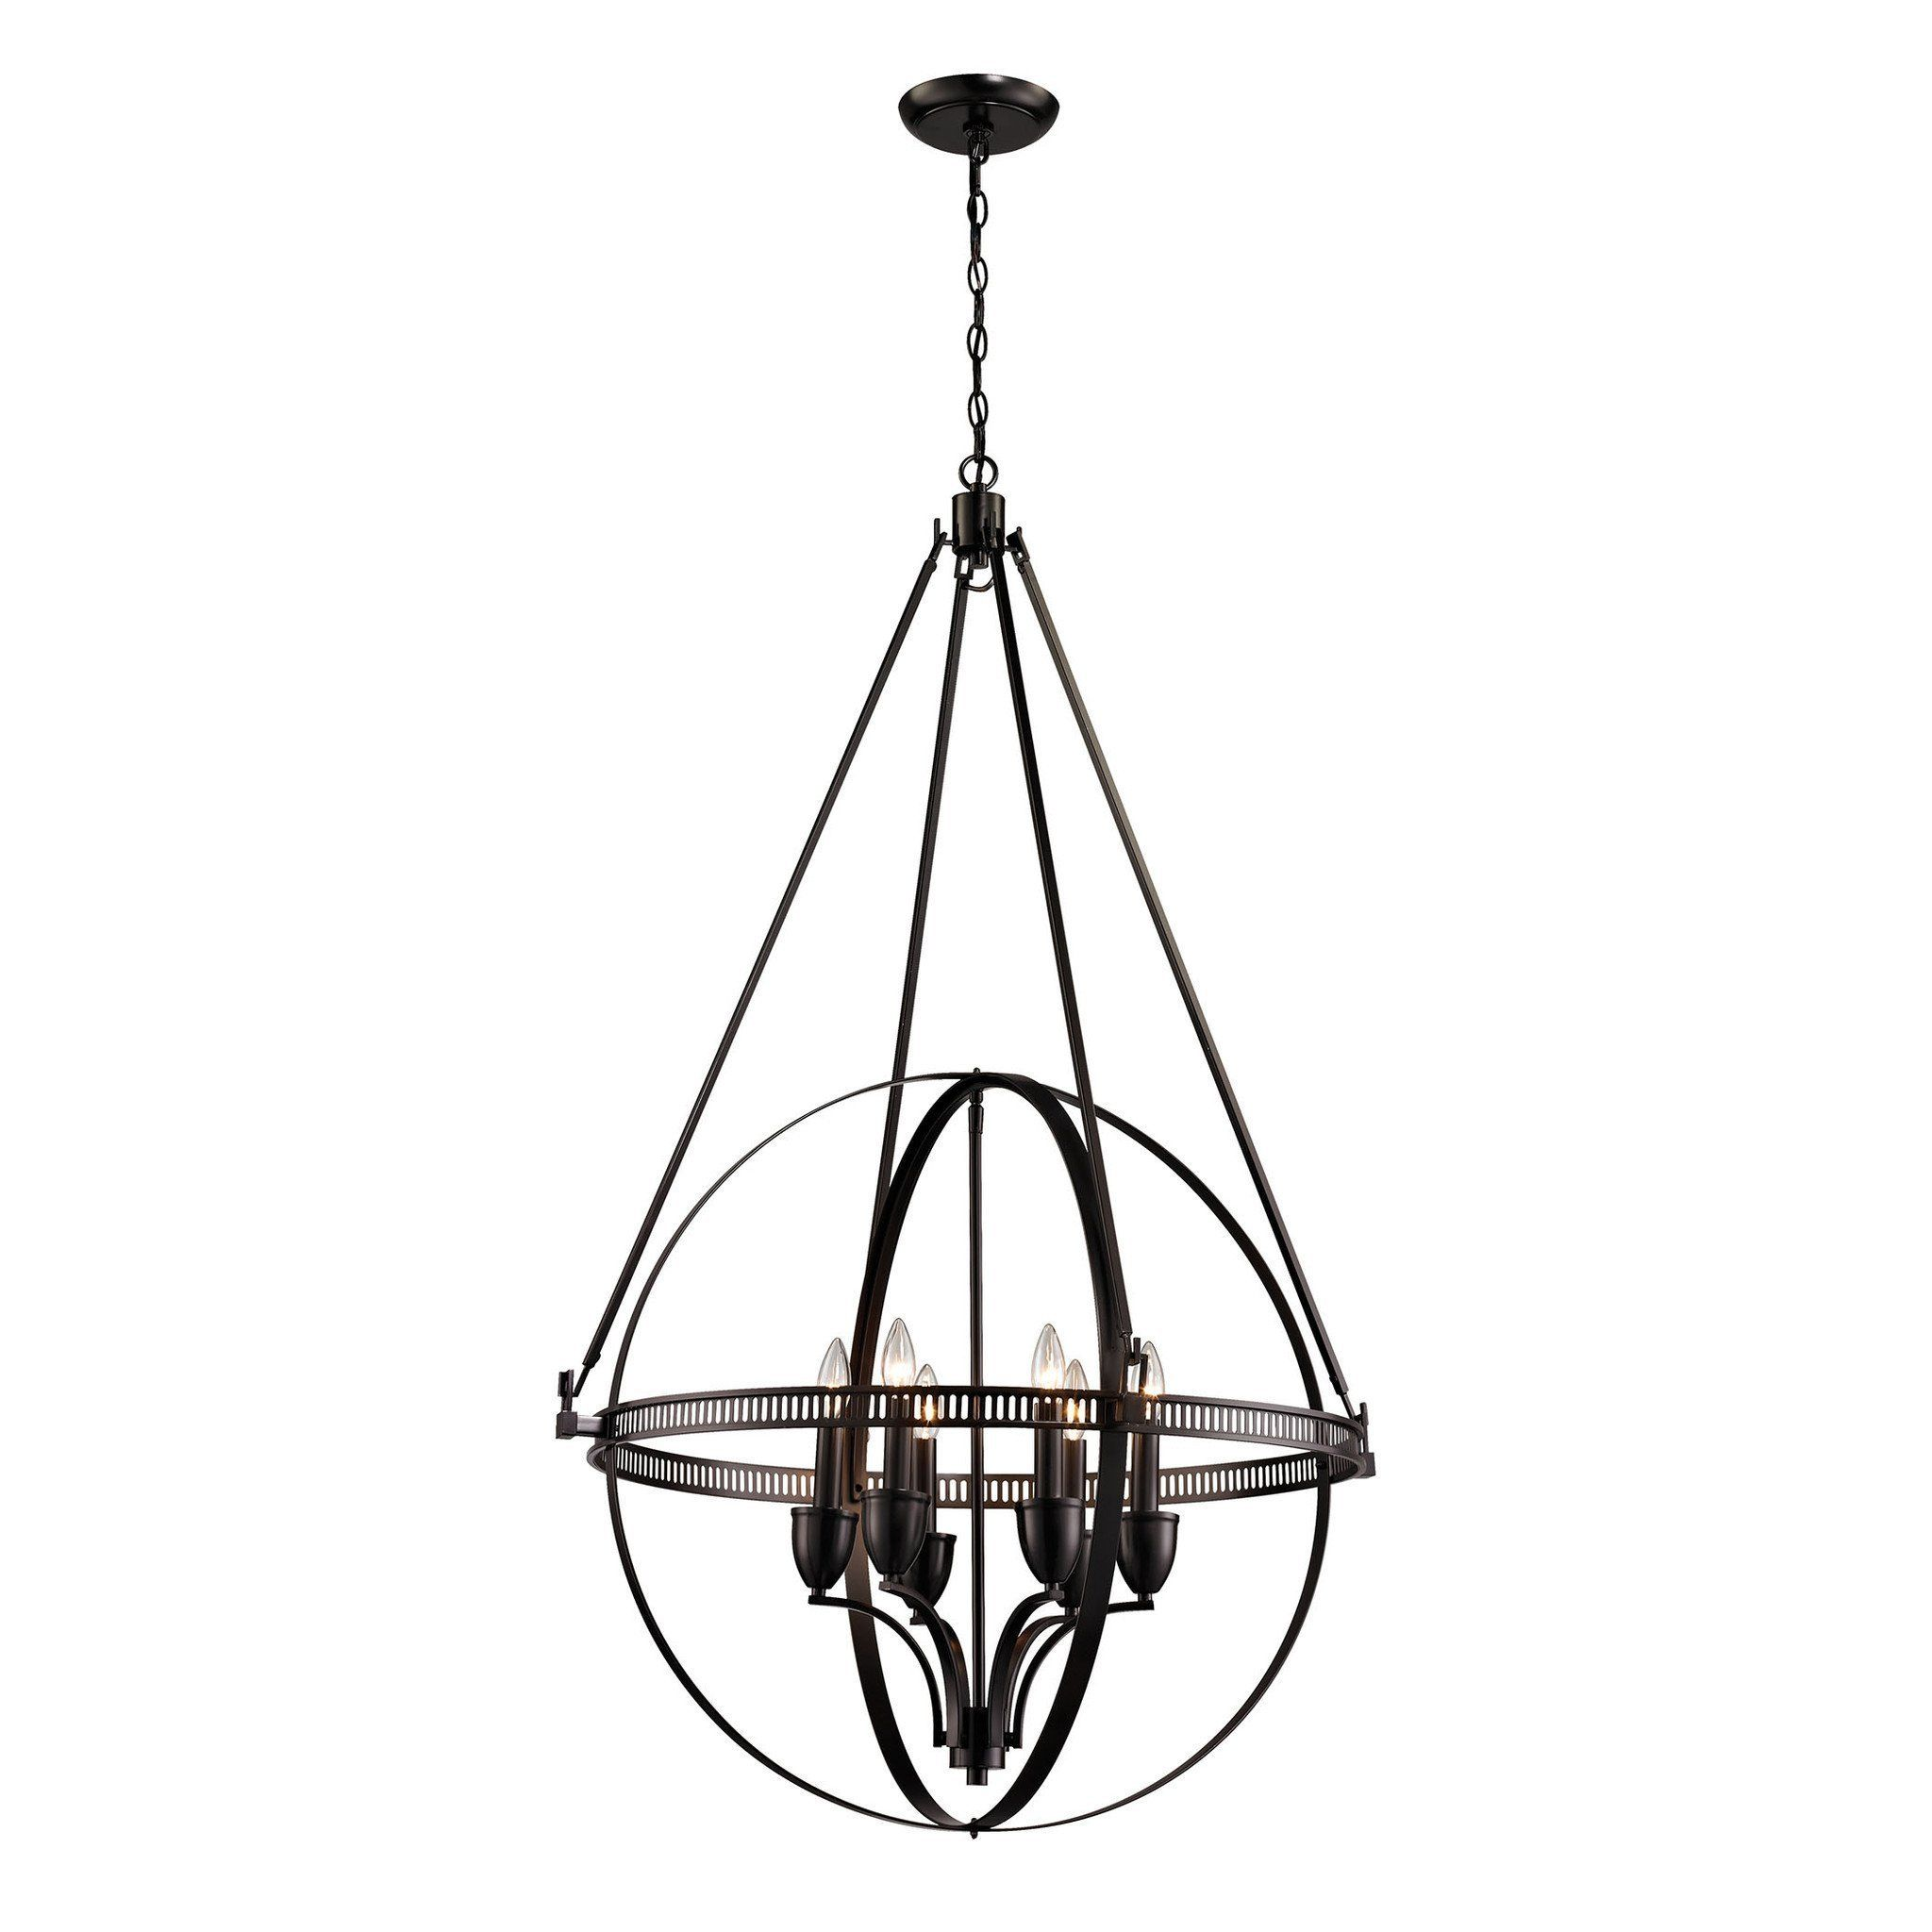 Elk Lighting 10393 6 Hemispheres Collection Oil Rubbed Bronze Finish